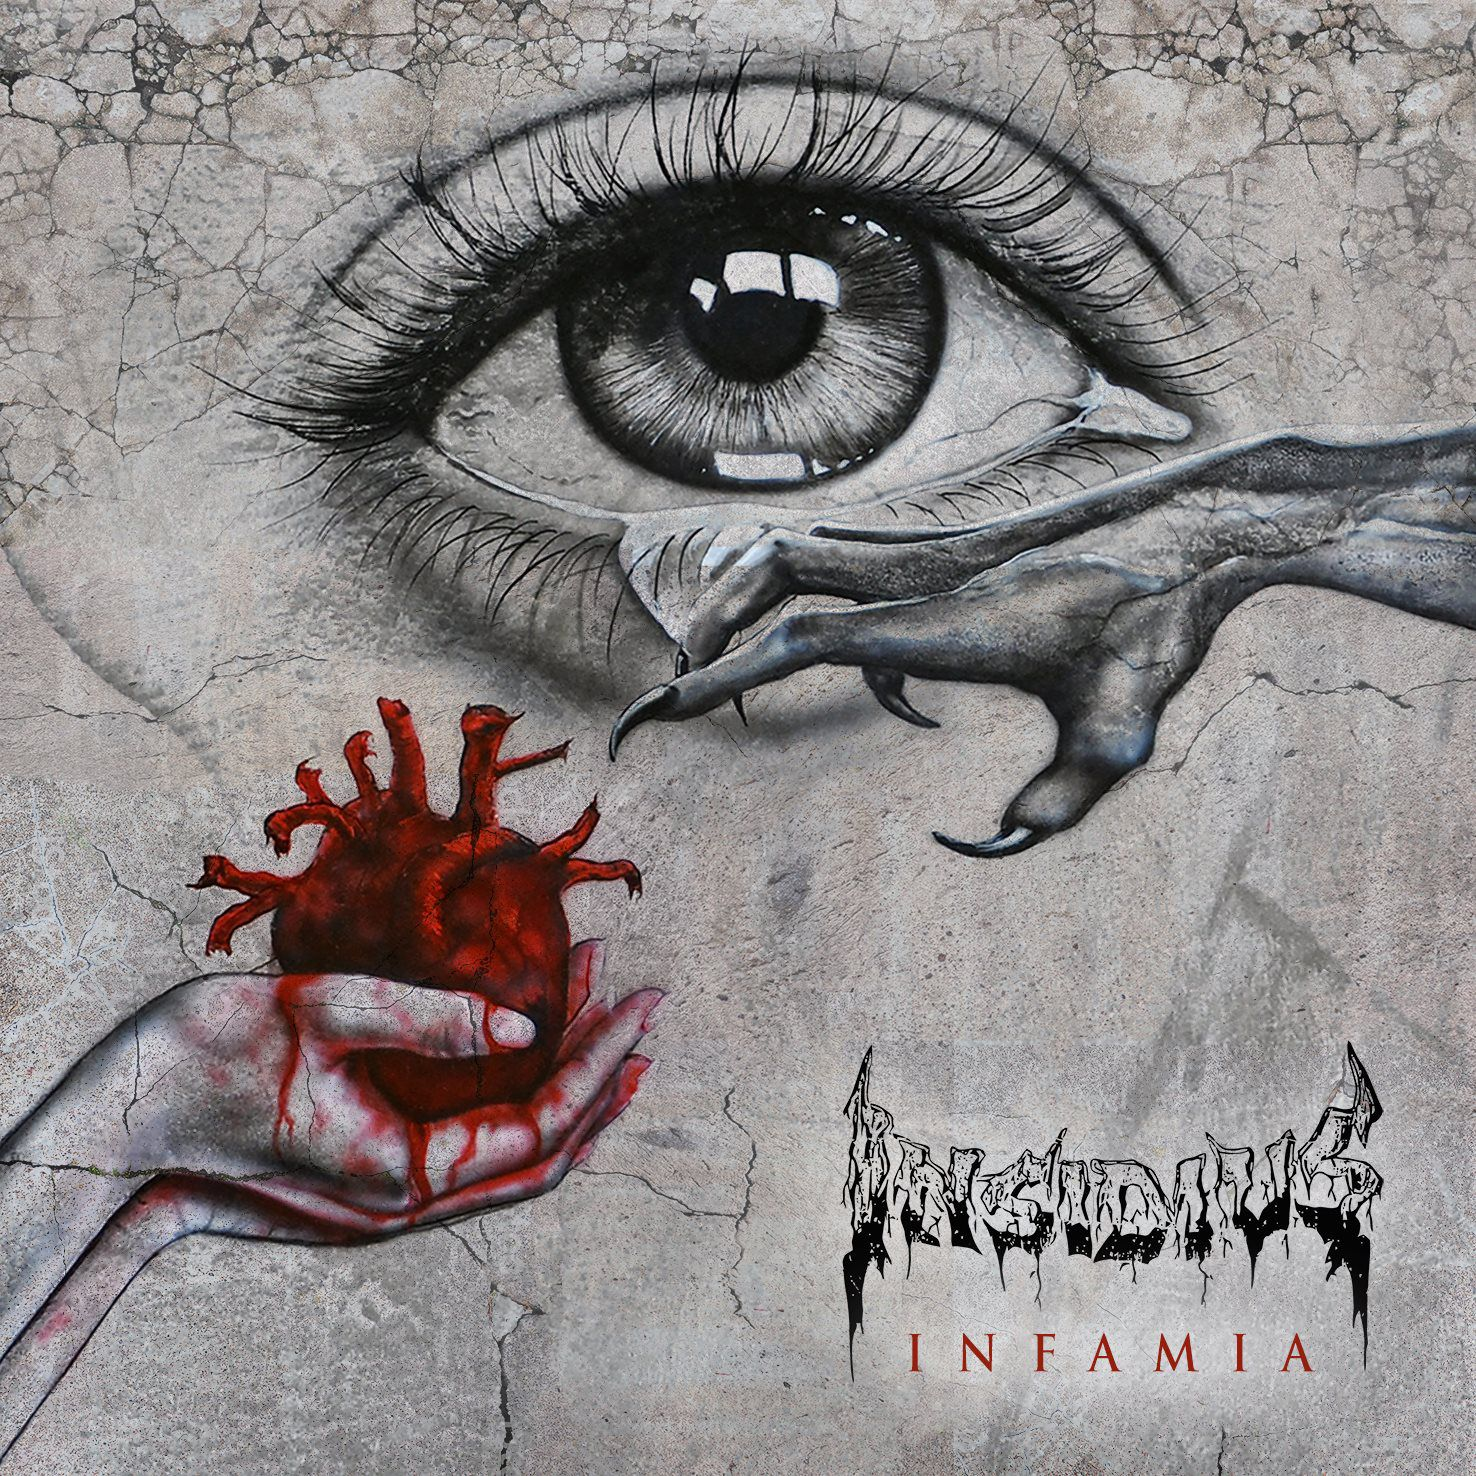 Insidius: Infamia - Death metal album